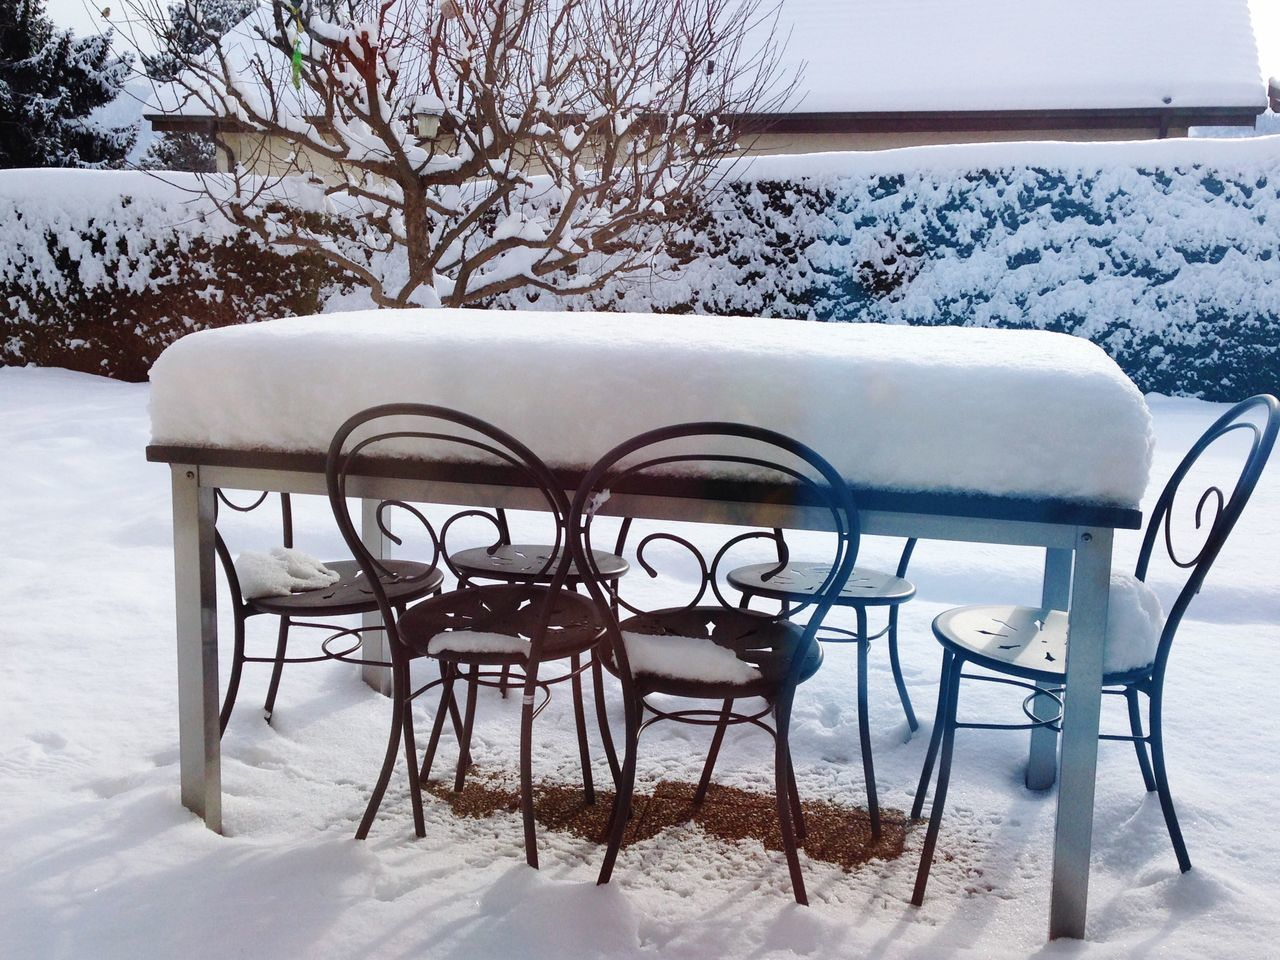 winter, snow, cold temperature, weather, nature, white color, table, chair, day, outdoors, no people, tree, beauty in nature, close-up